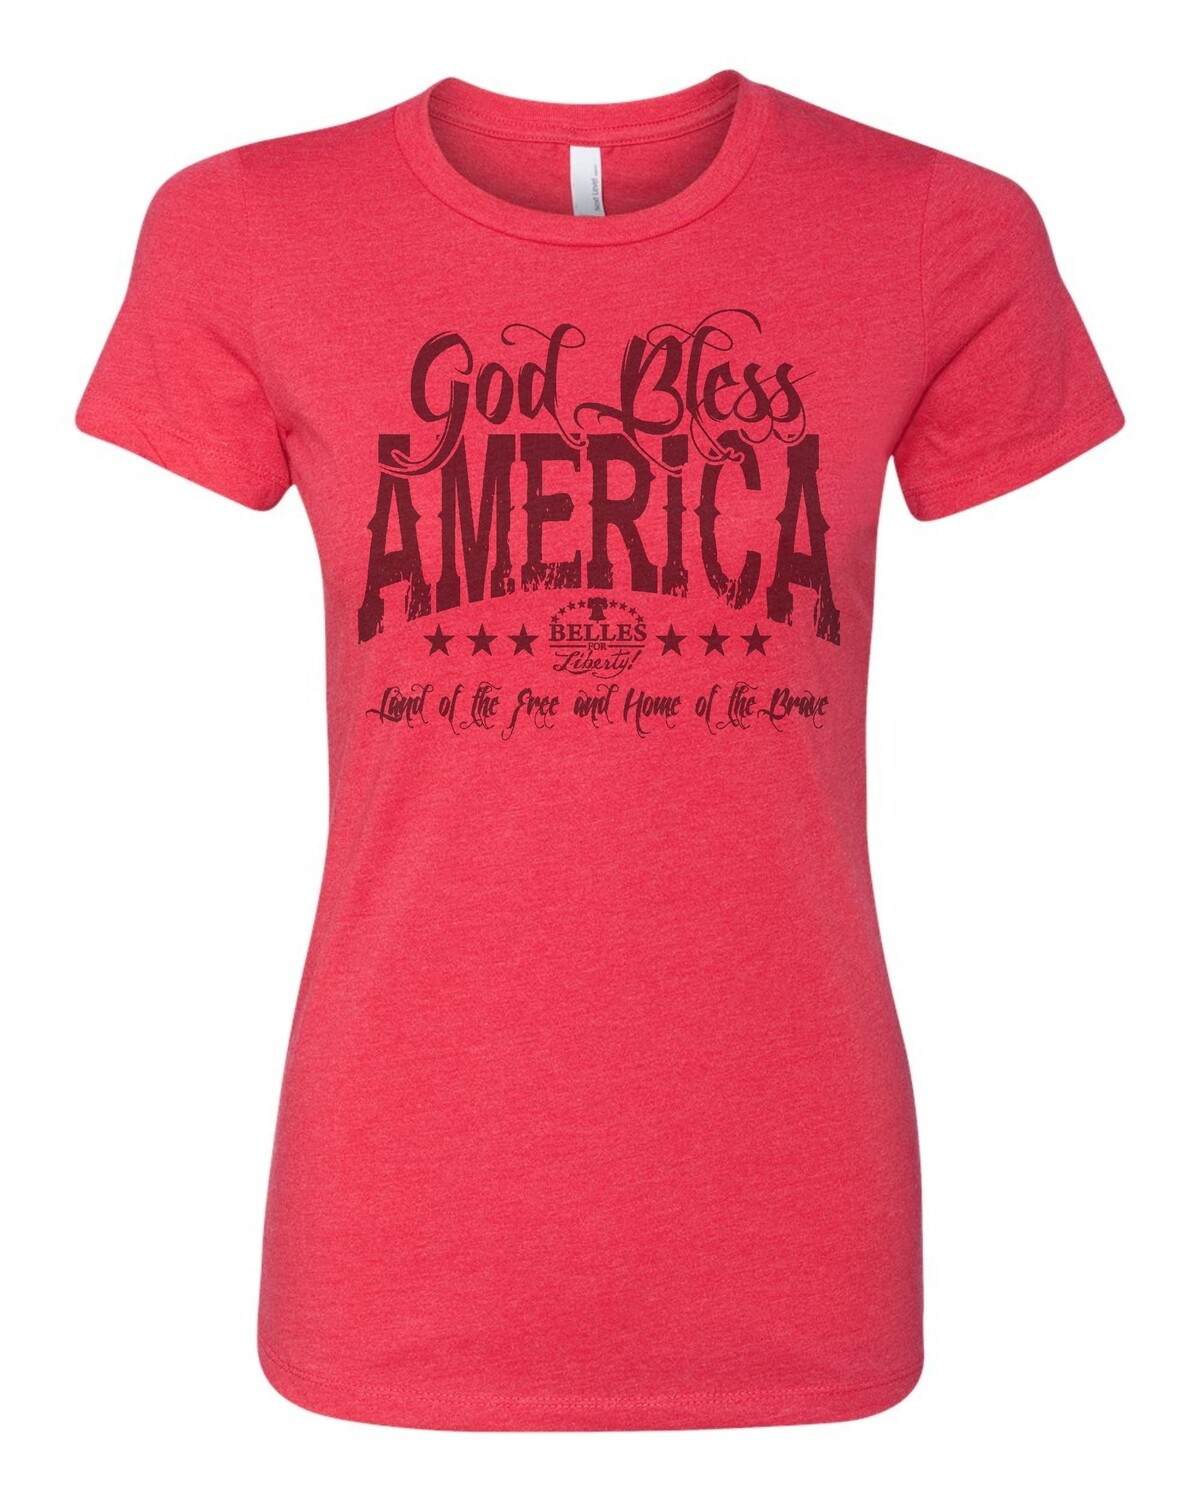 GB-6610-GODBLESS-RED